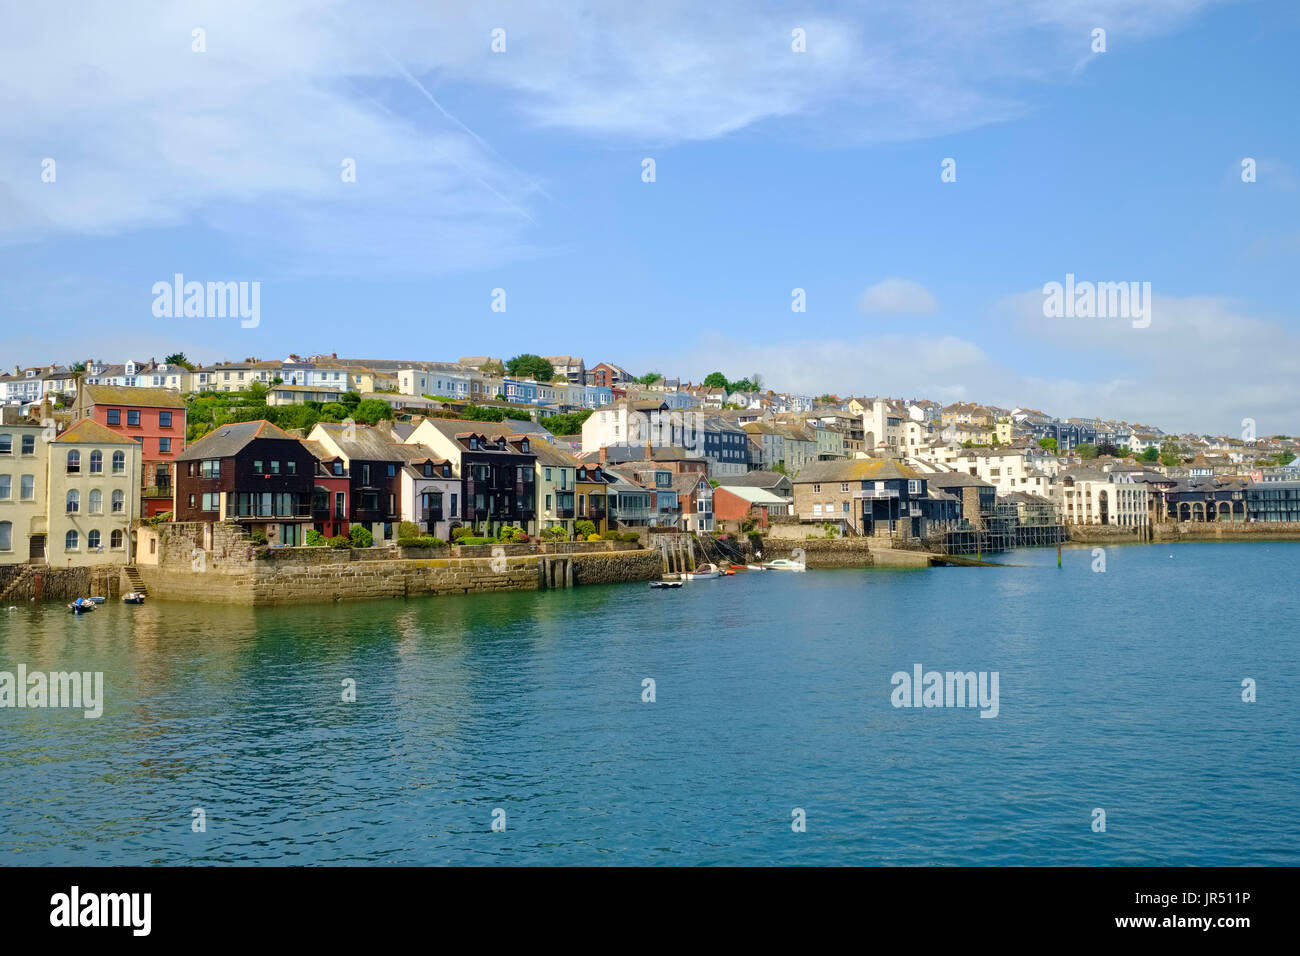 Falmouth, Cornwall - town waterfront houses at Packet Quays and harbour estuary UK Stock Photo